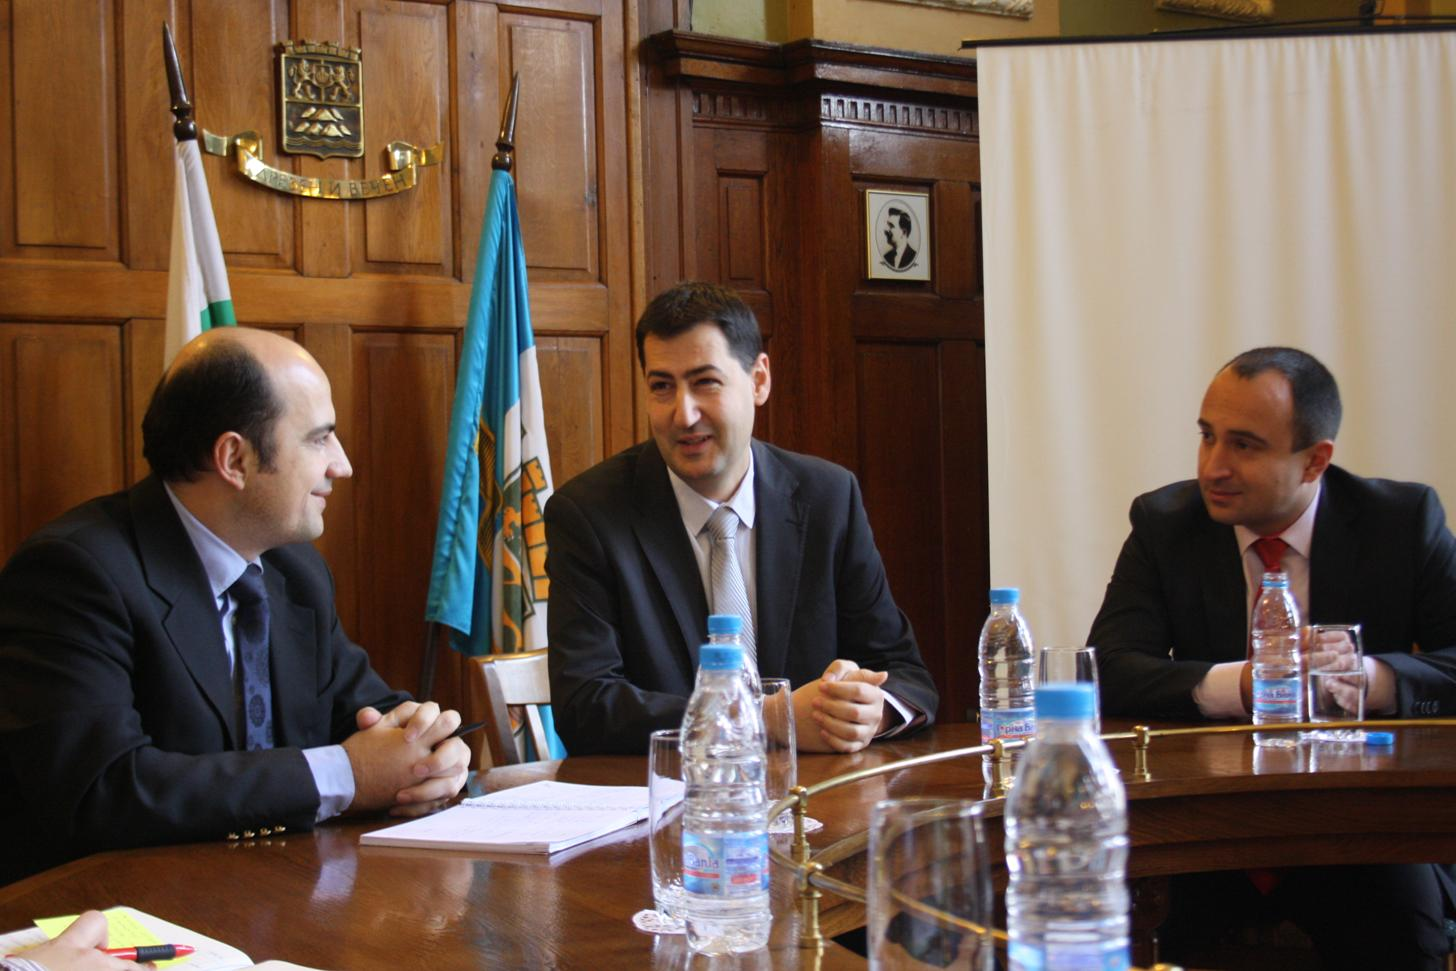 NALAS and its partners started the preparations for NEXPO 2015 in Plovdiv, Bulgaria